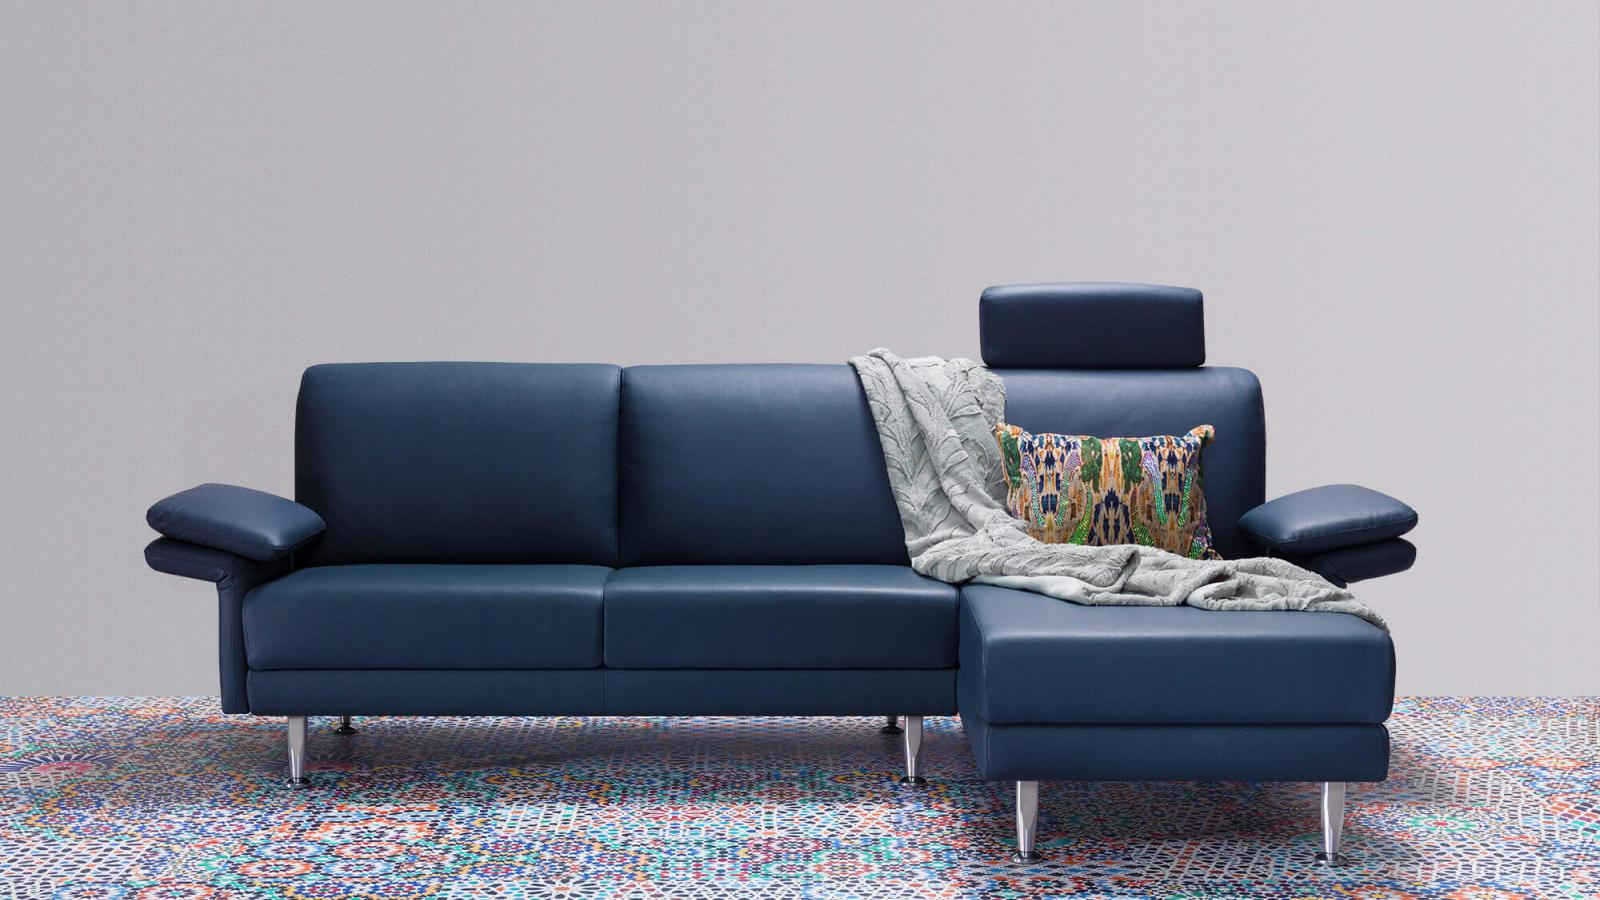 horst collection schweiz switzerland suisse melide sofa canape design moebel furniture meubles blau blue bleu leder leather